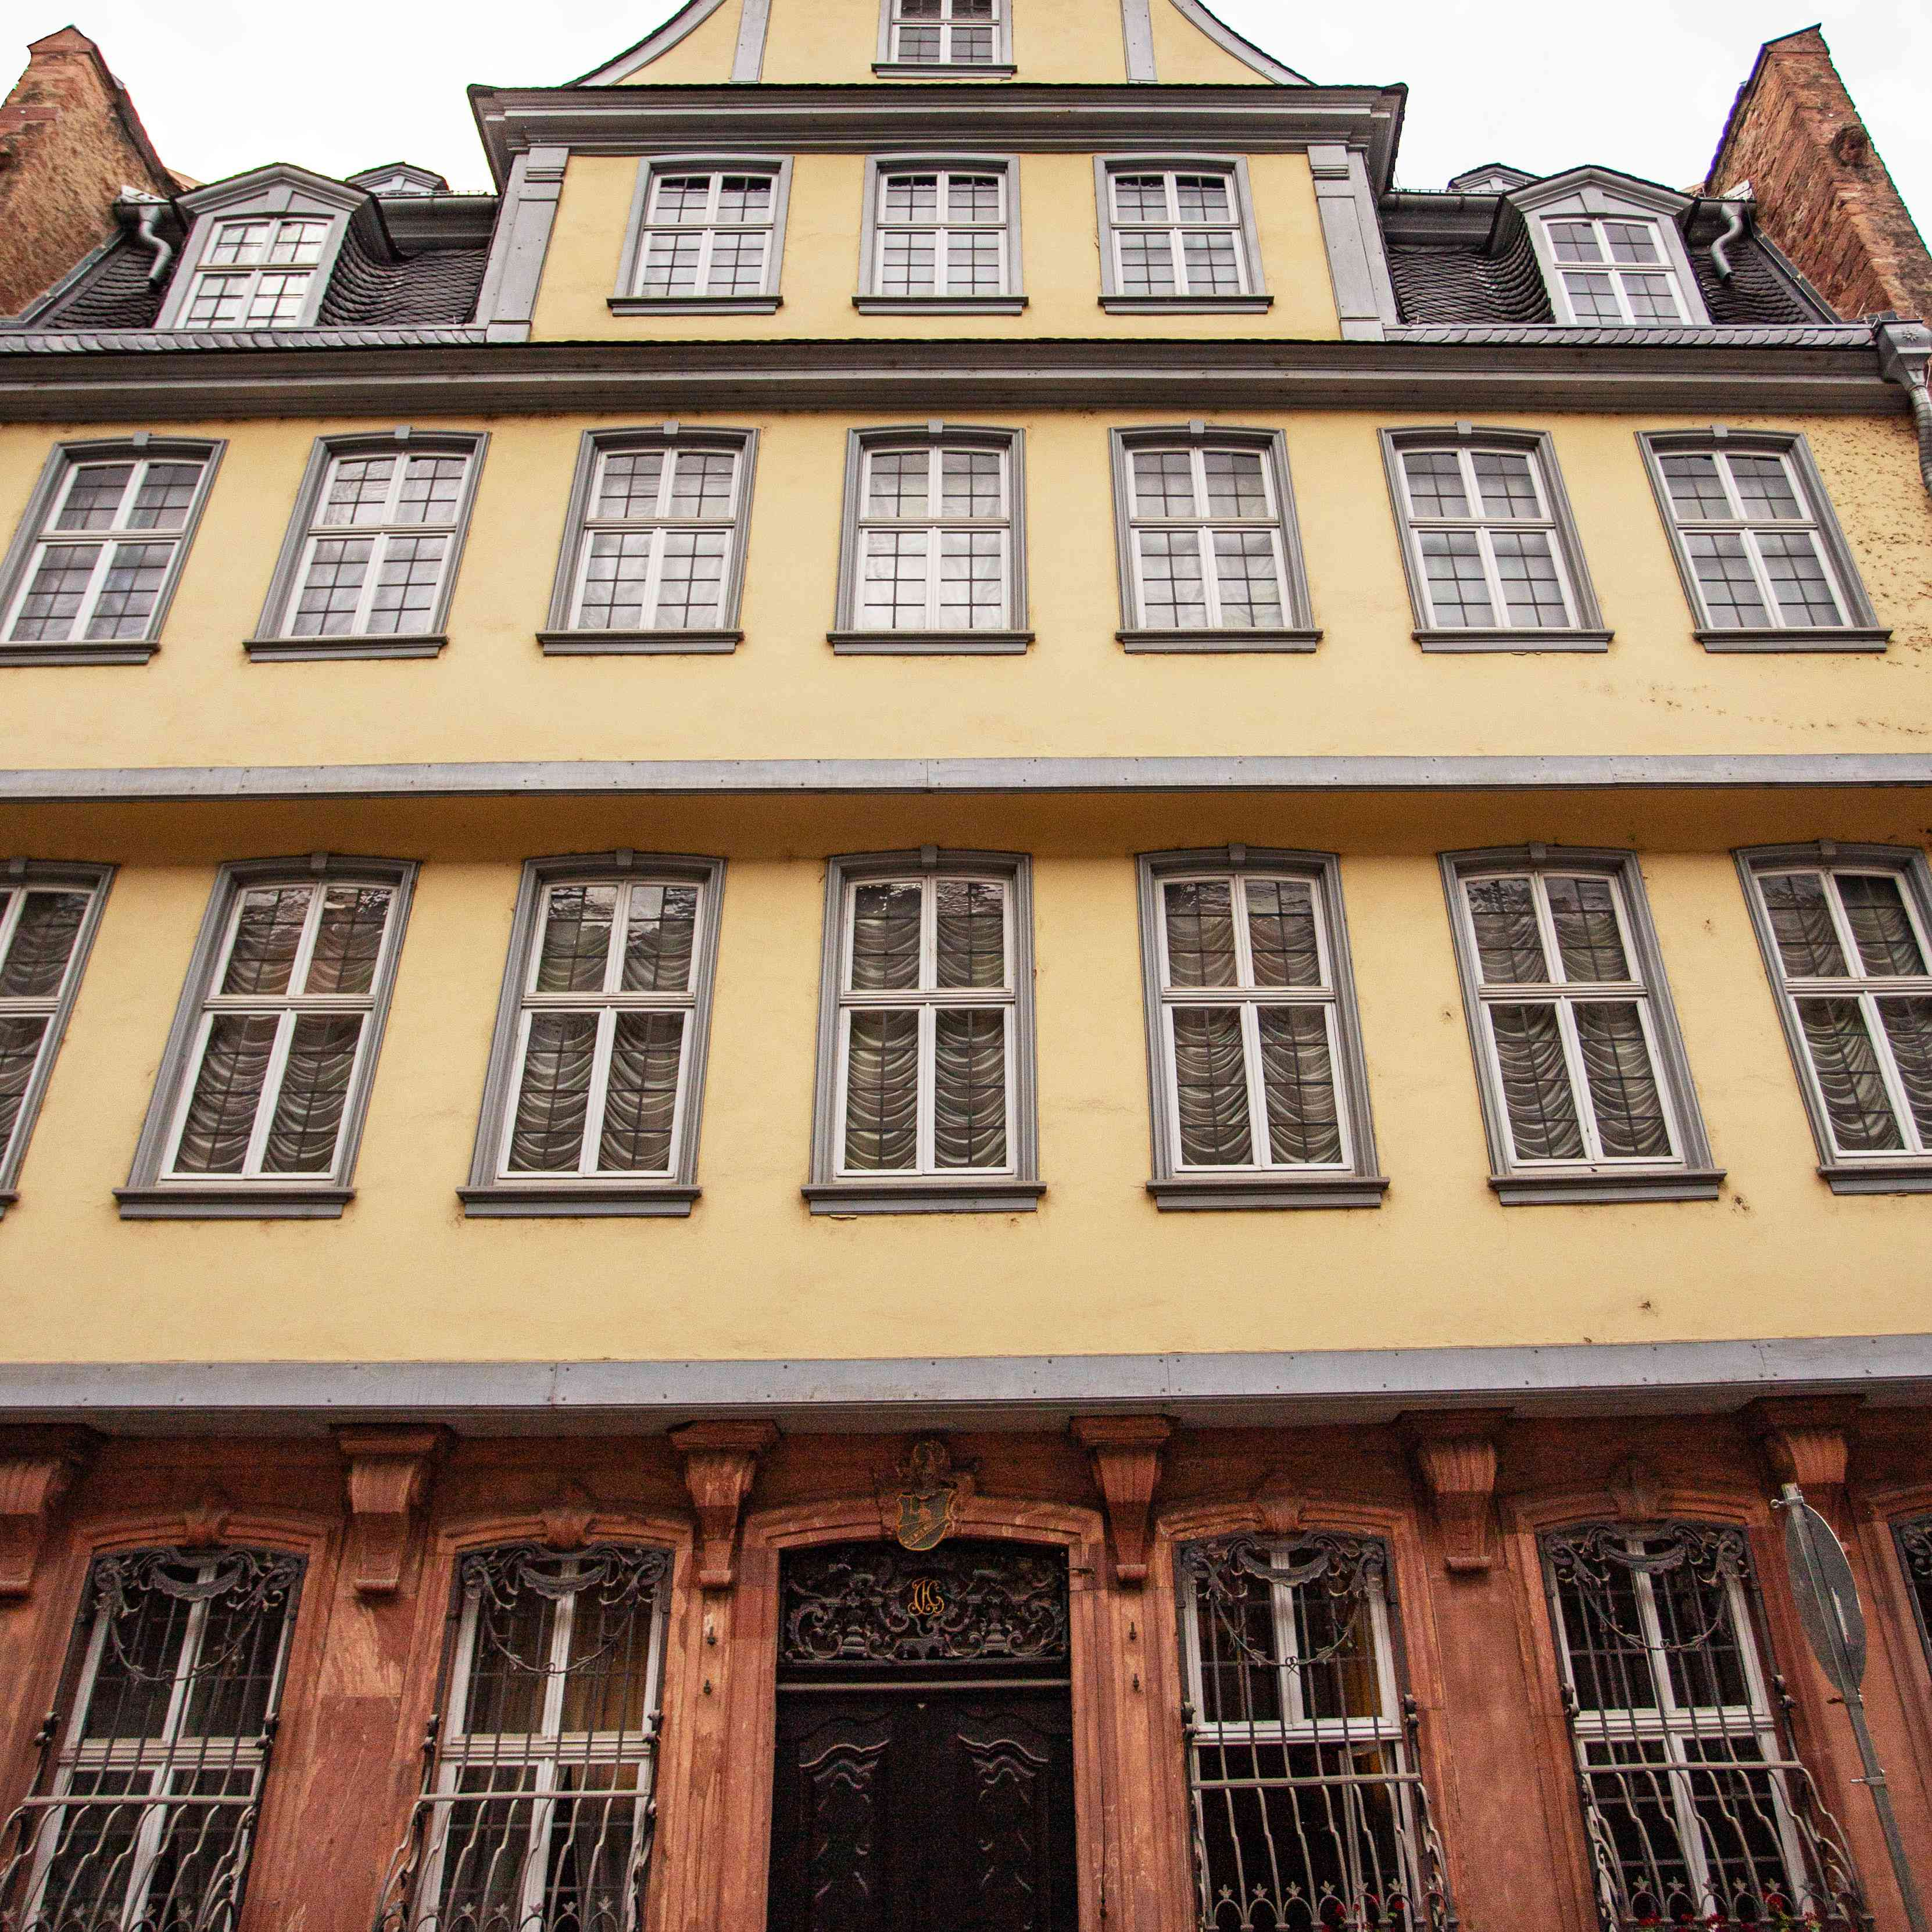 Exterior of the Goethe House